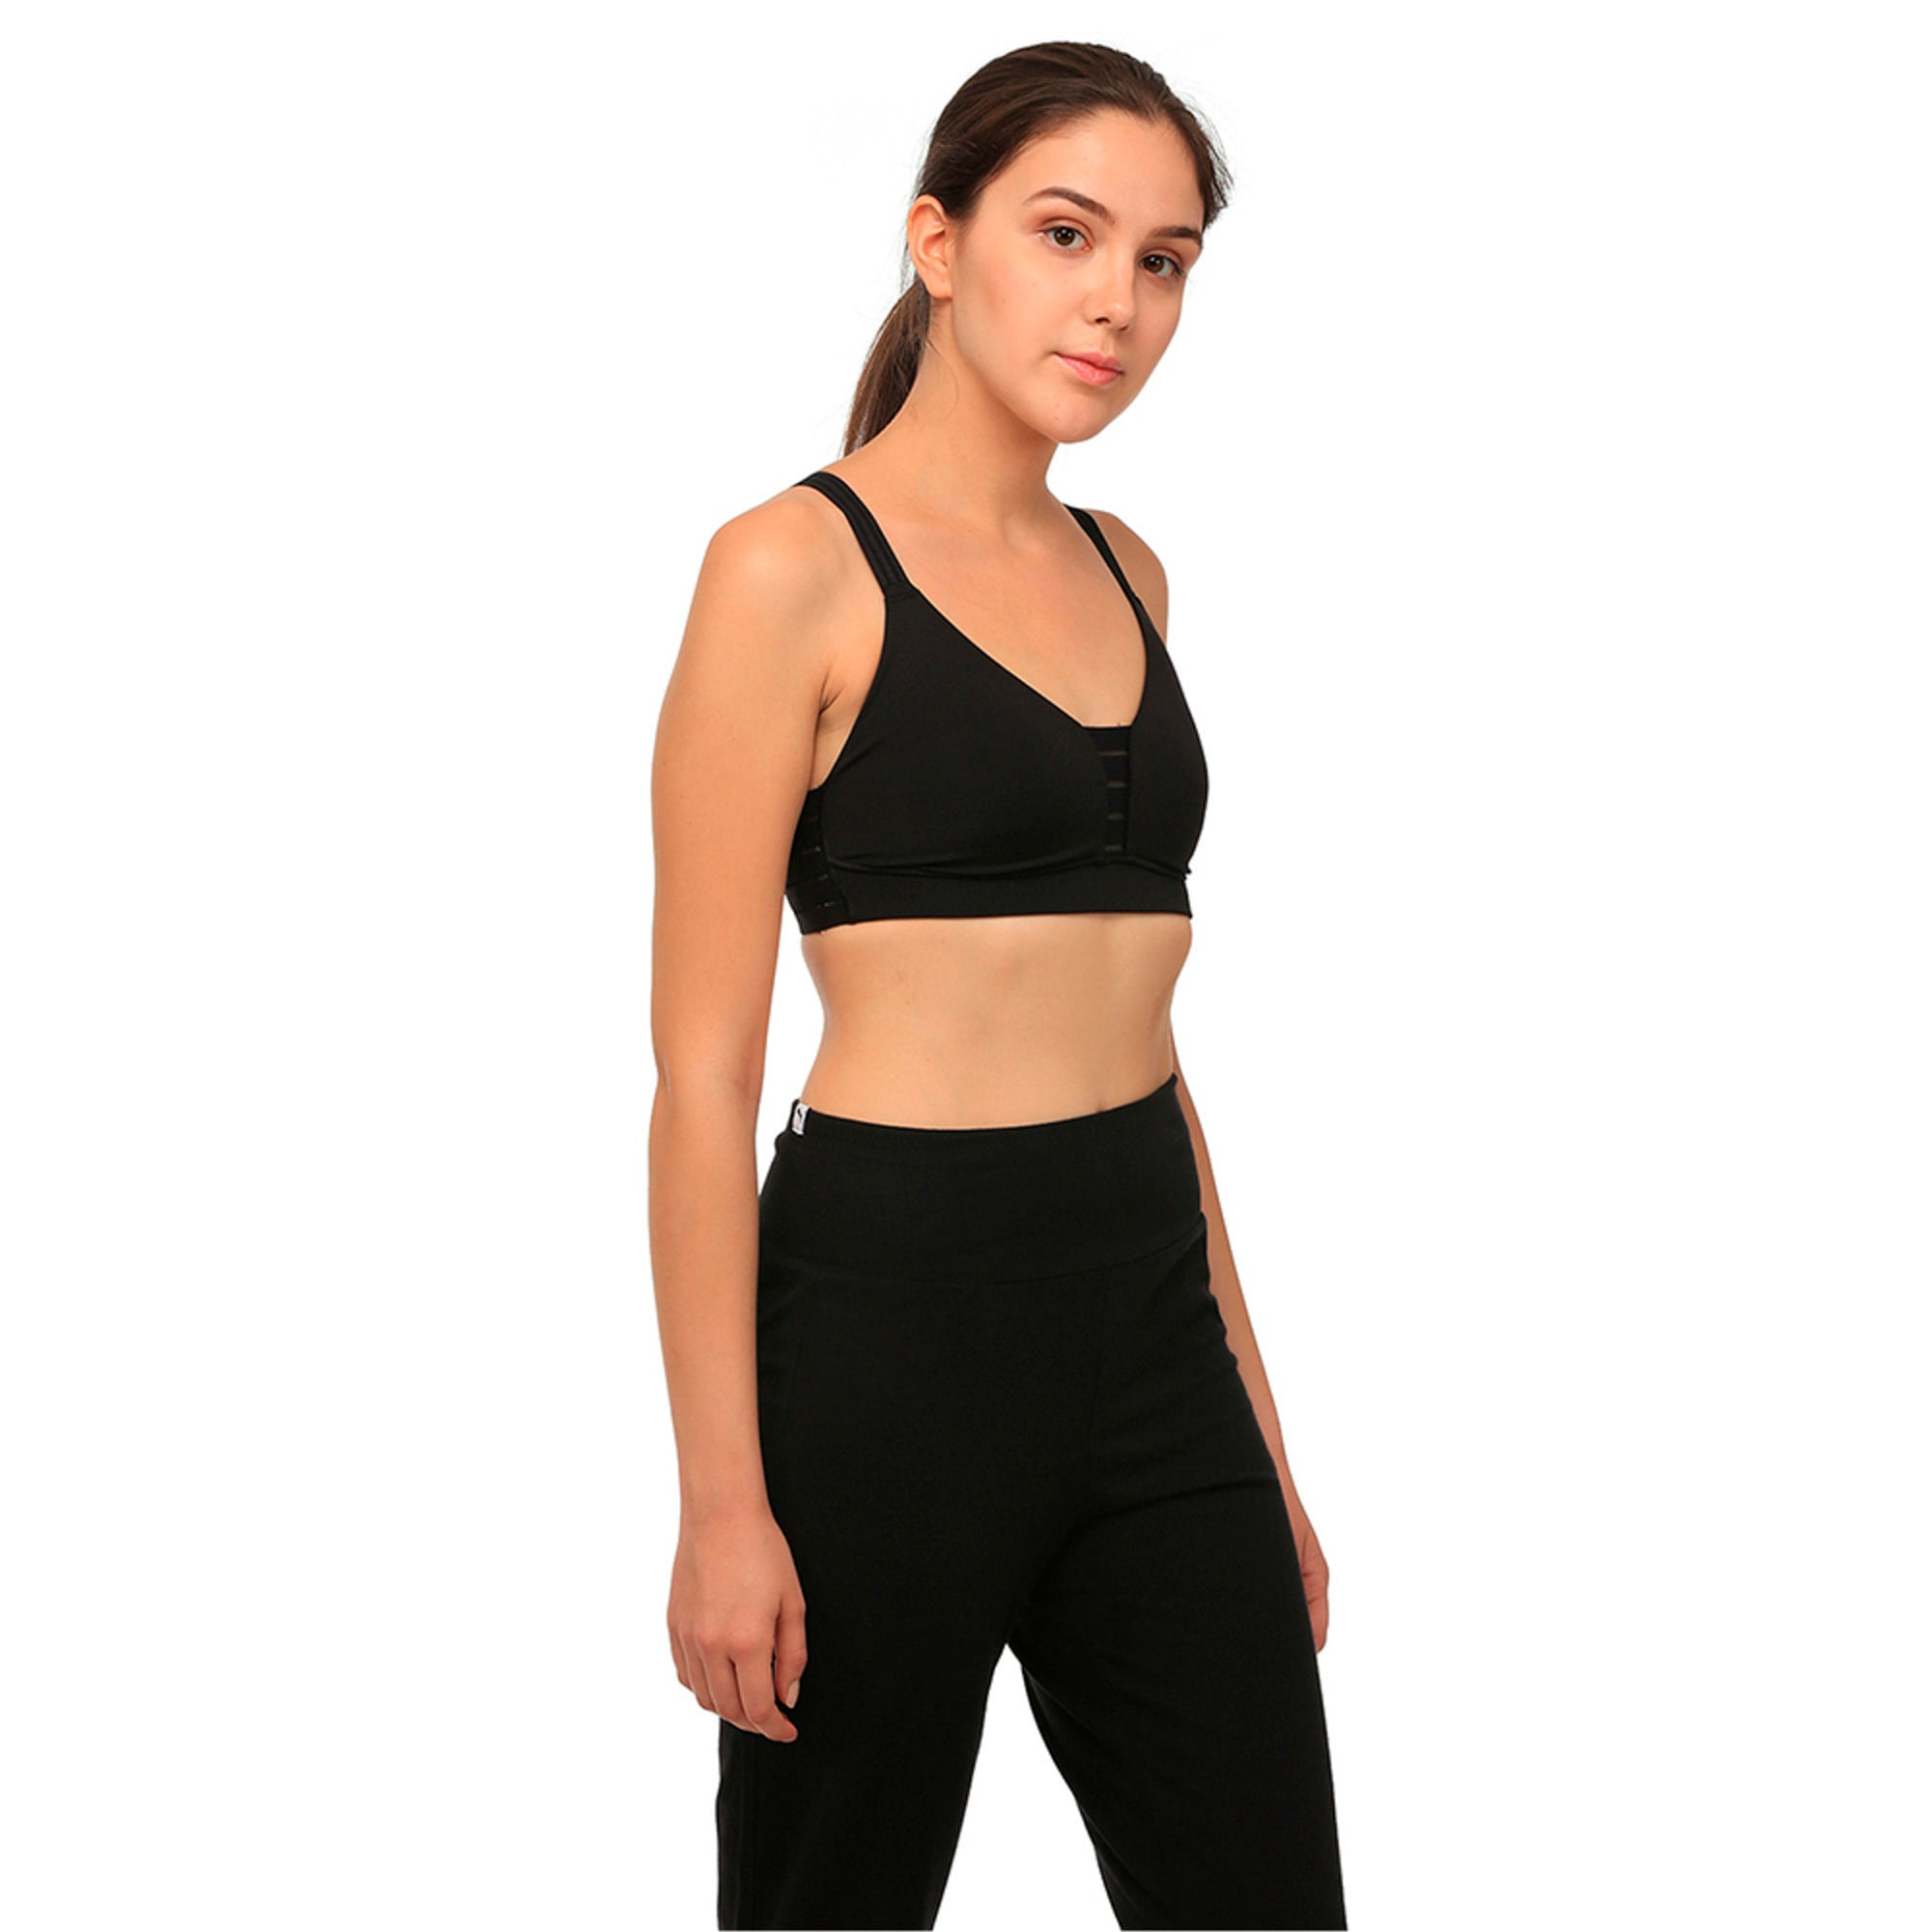 Thumbnail 3 of Training Women's Yogini Show Off Bra Top, Puma Black, medium-IND